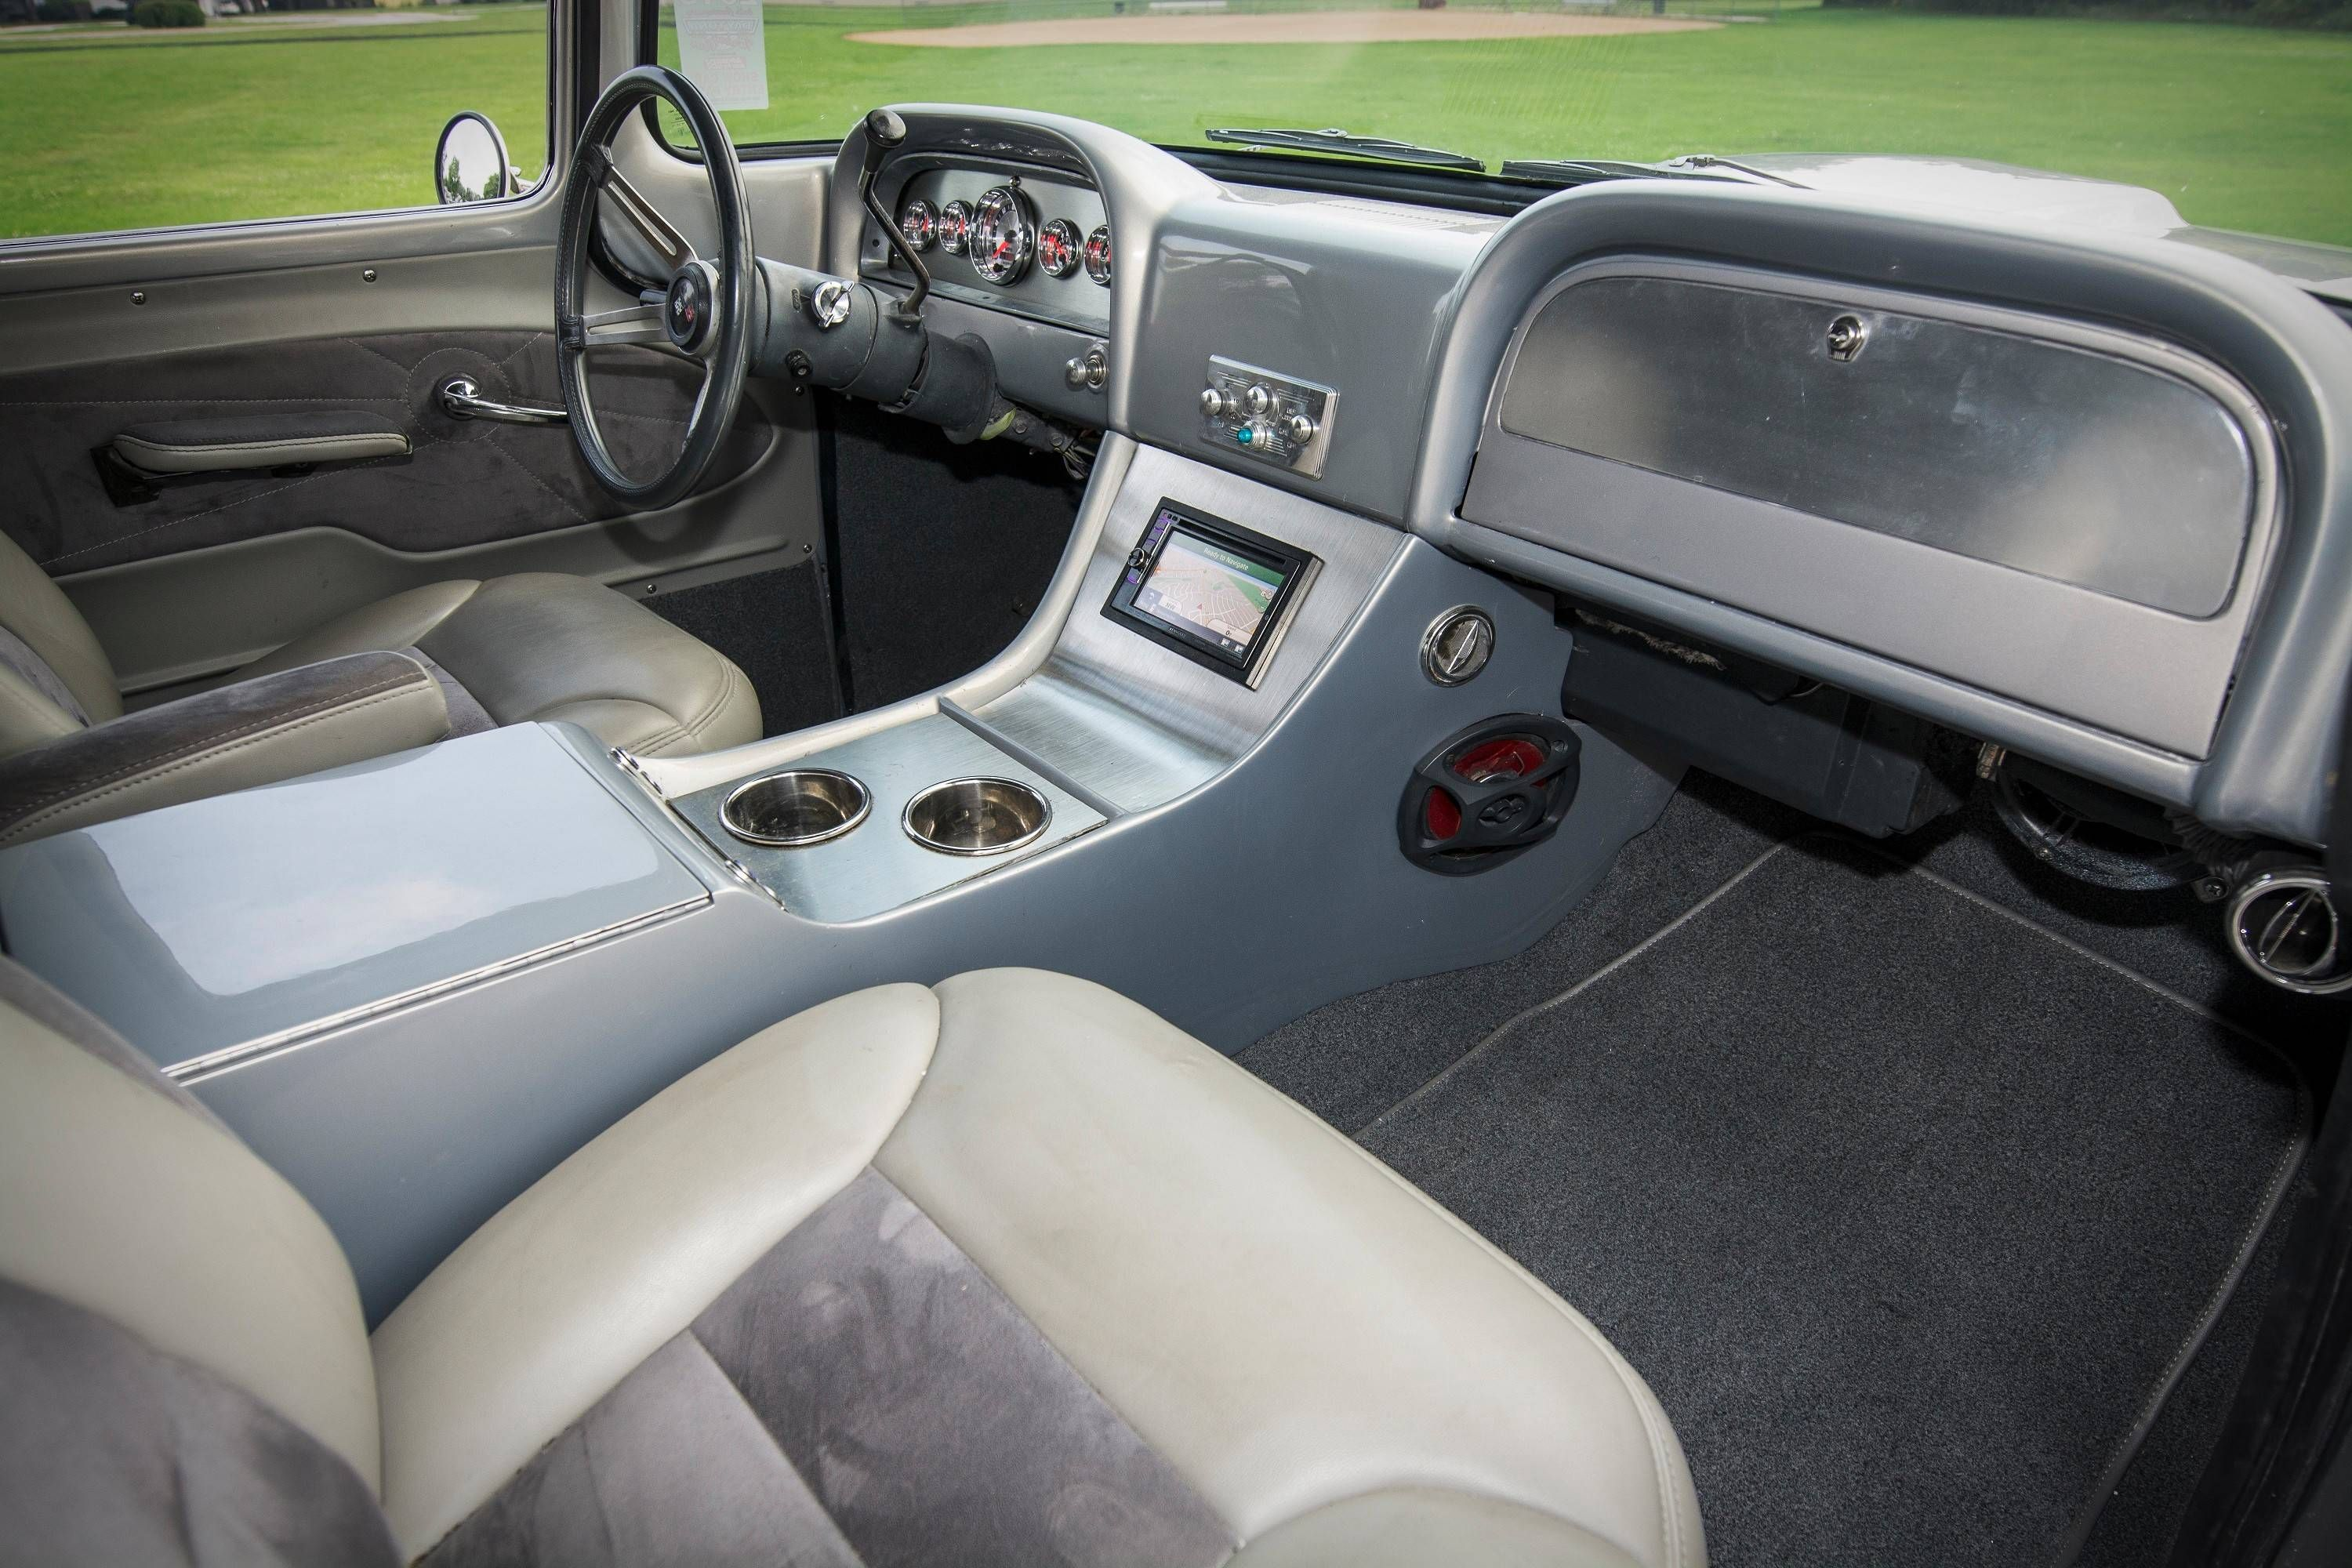 panels showcased first at pickup show sema news pages pressed content find not the been to custom trucks silverado that this d has a chevy chevrolet customized figure six media on hard us oct door be detail truck en you interior single part